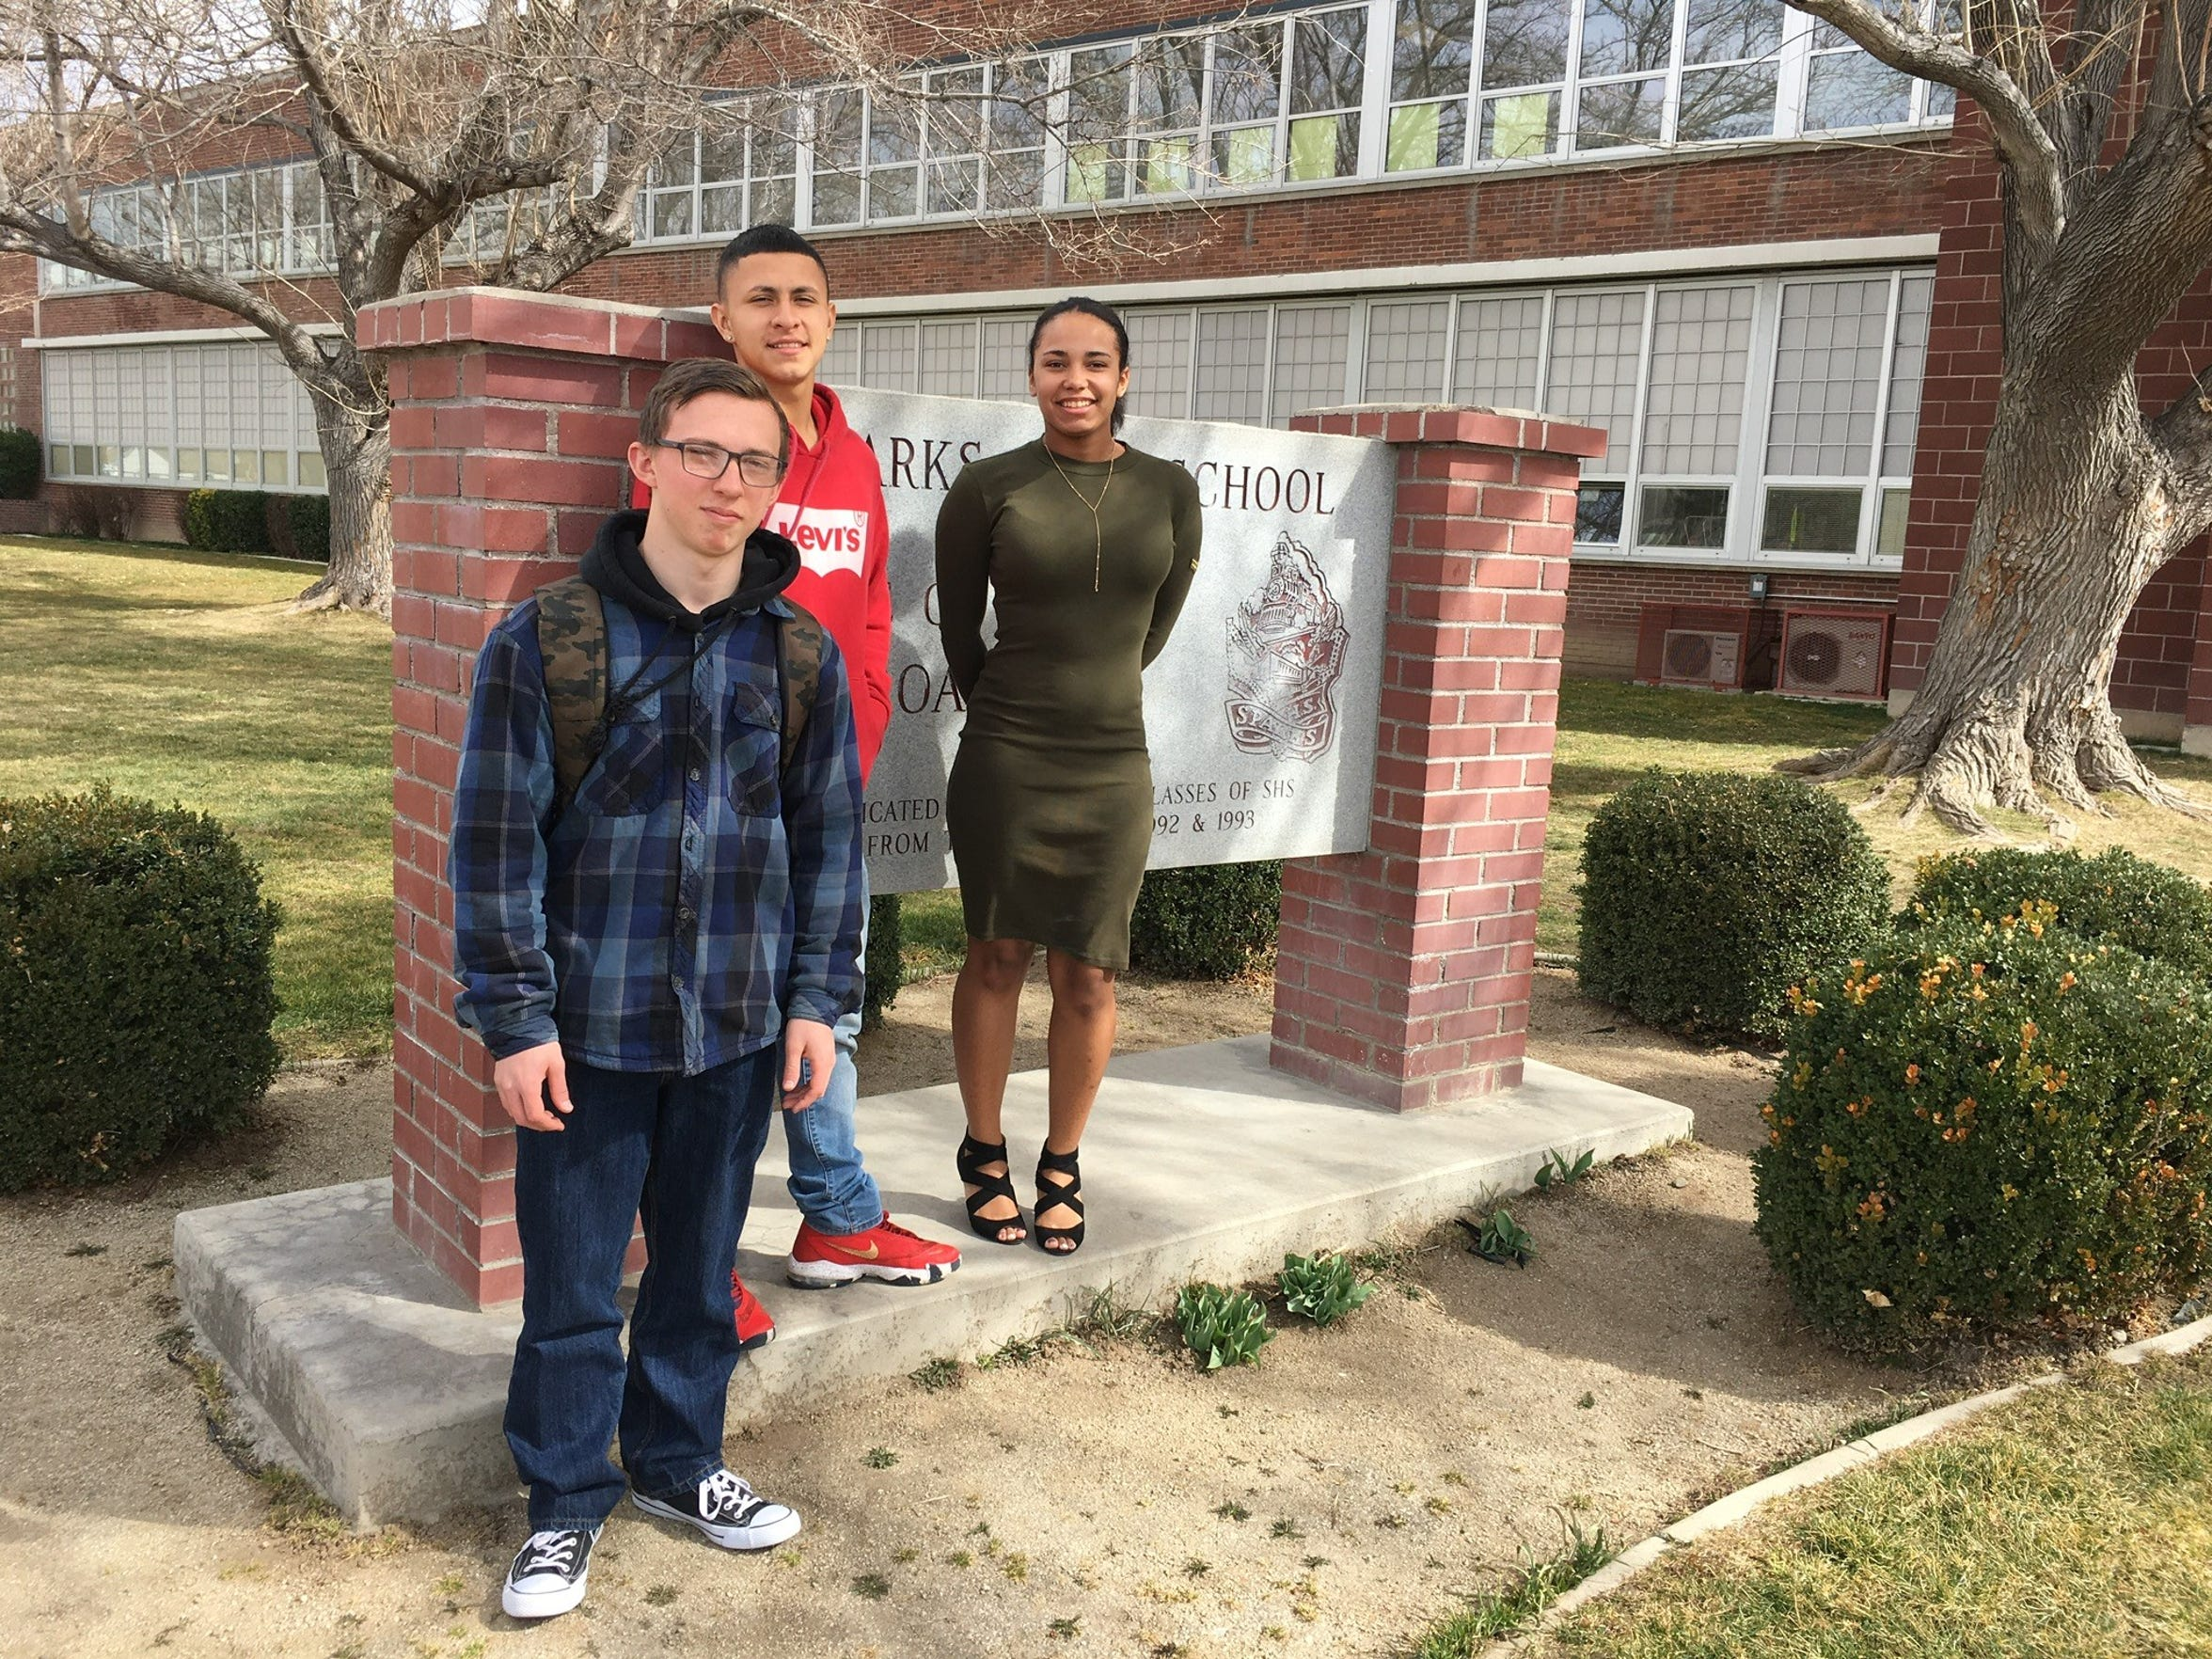 2018 Sparks High grads Neil Penrod, Justin Fuentes and Elizabeth Long stand outside of their school. The three were students at Sparks Middle School in 2013, when a student shot and killed a teacher, shot and injured two students and killed himself with a gun he brought to school from home.